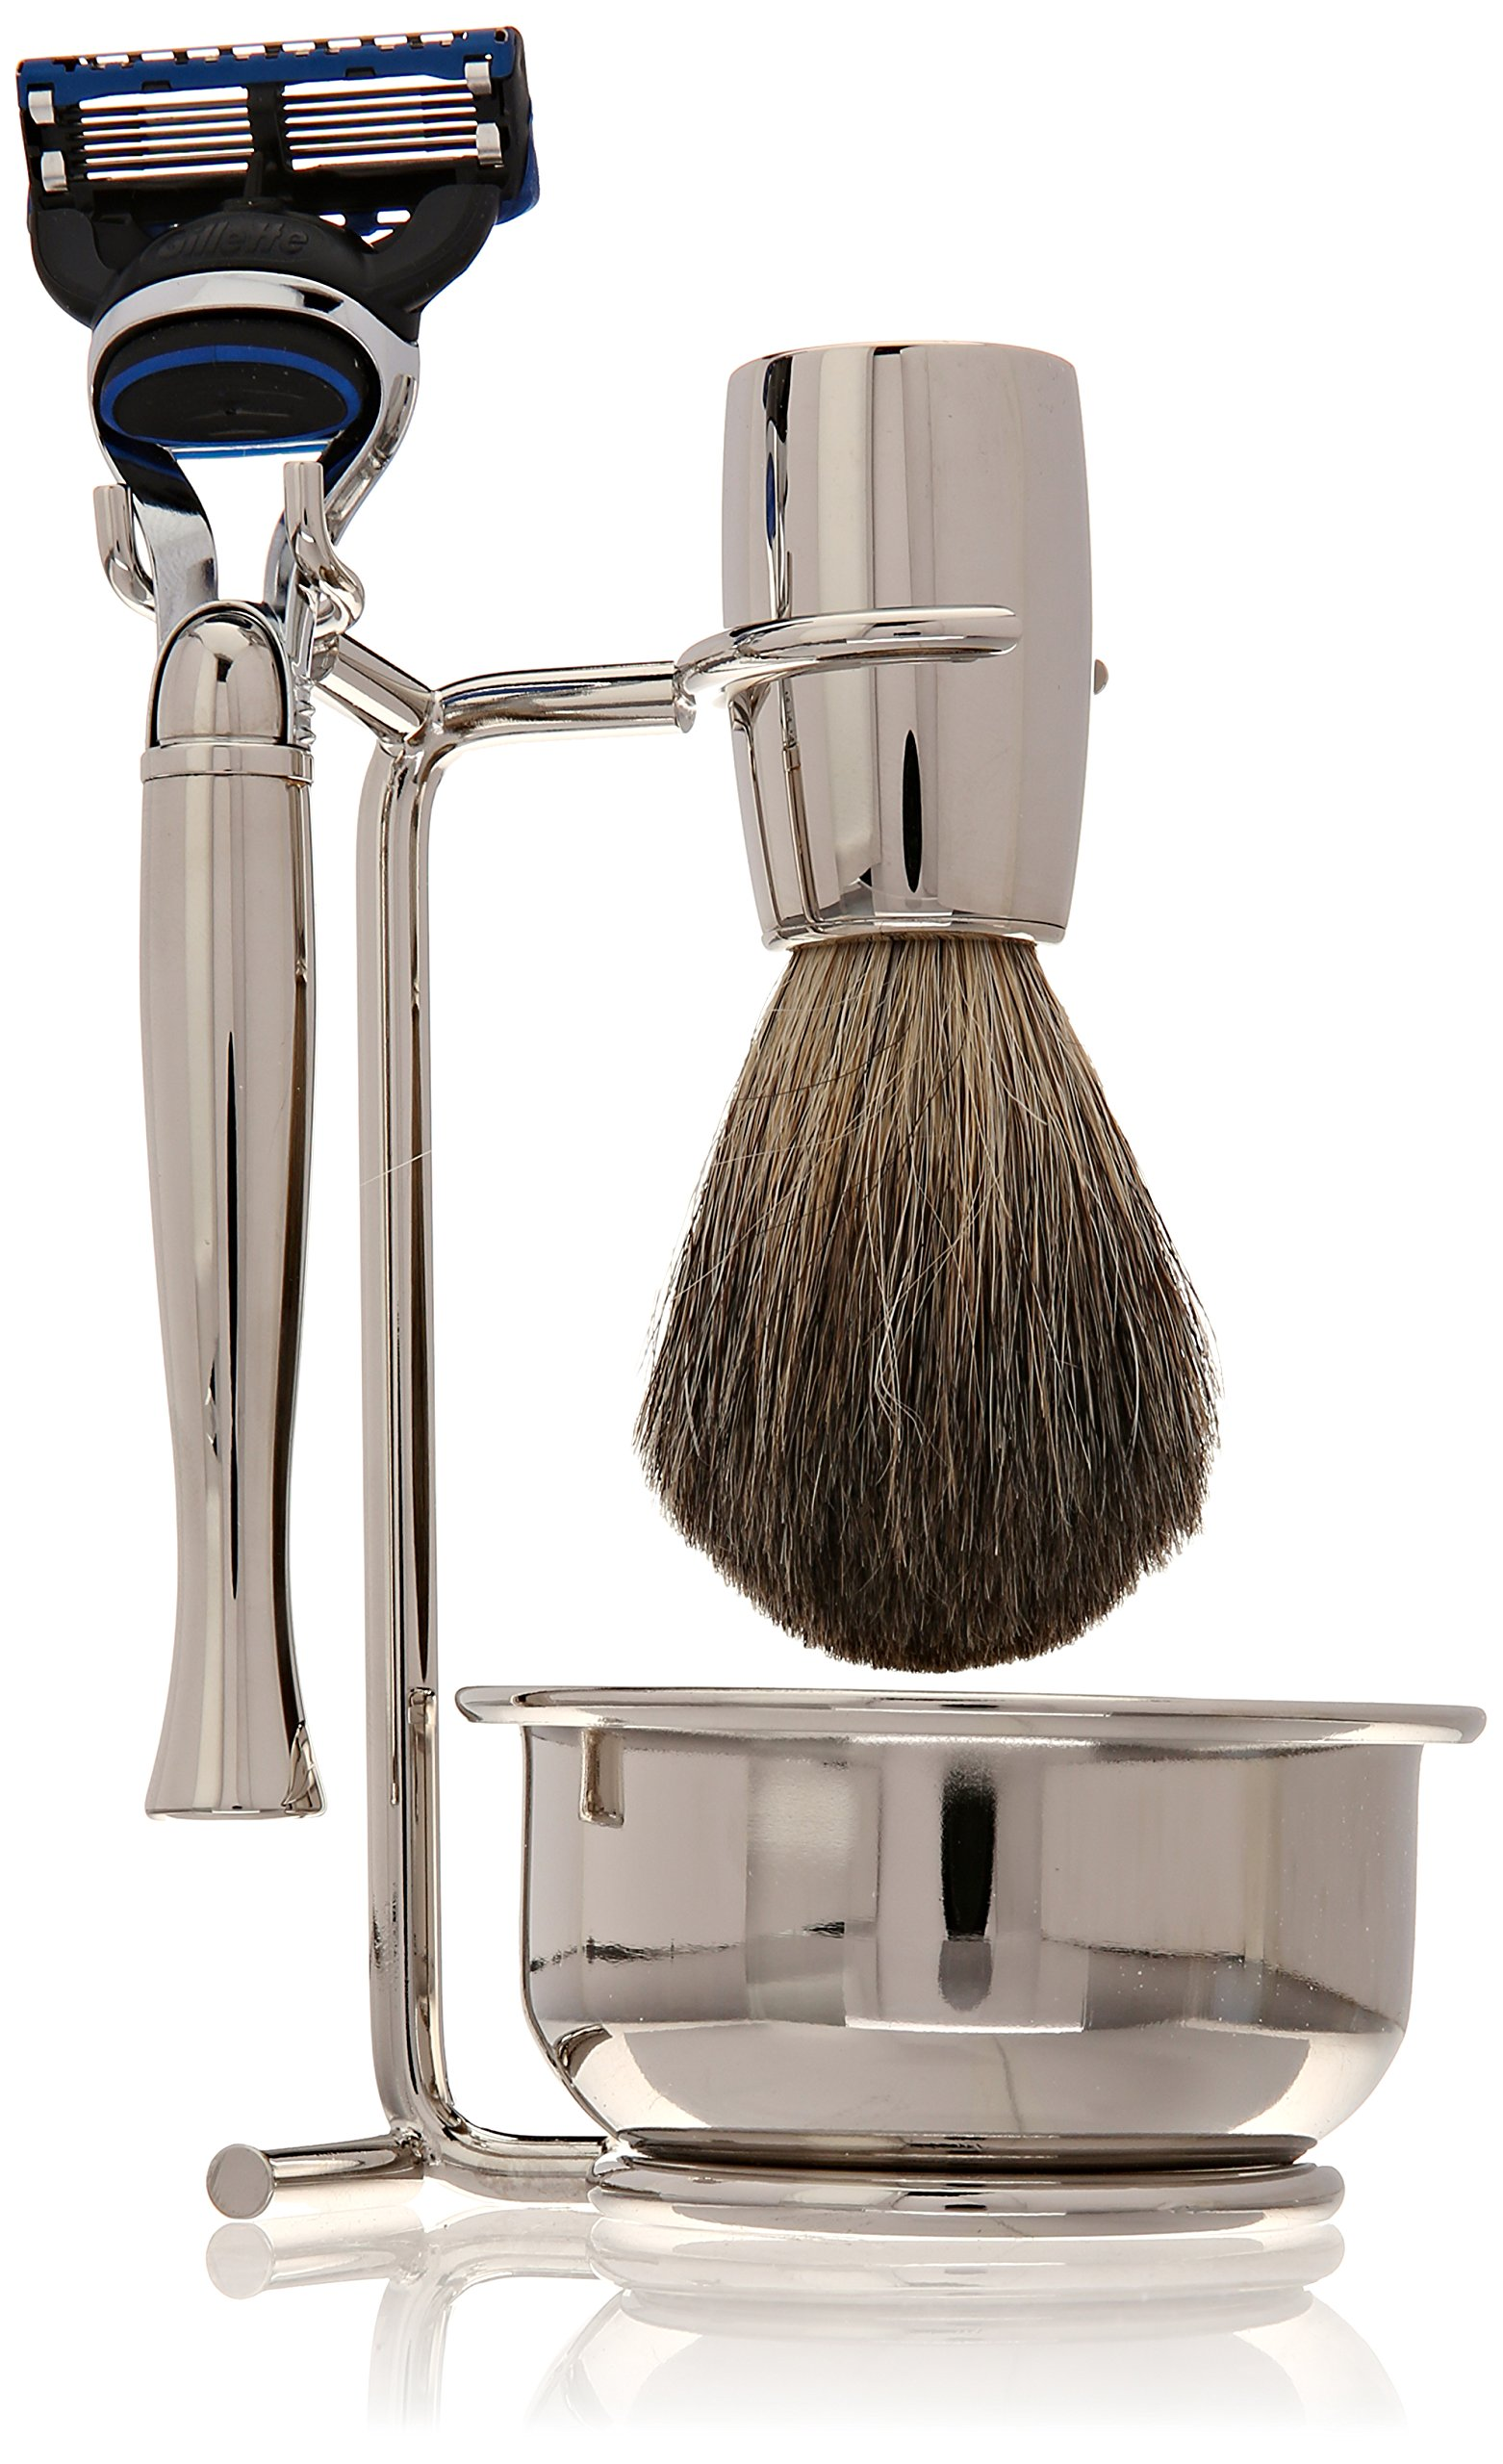 Swissco 5-Piece Shave Set,Nickel, Badger, Fusion Razor, Bowl & Soap, 23.5-Ounce Box